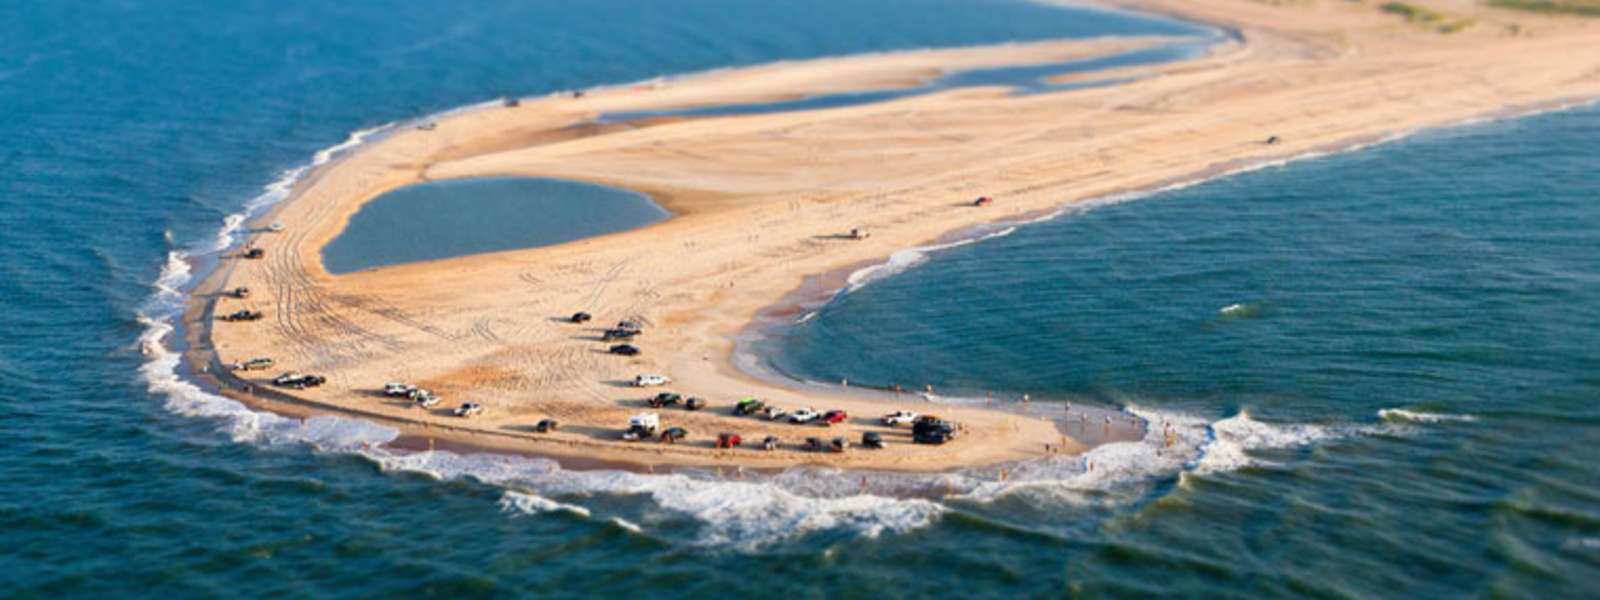 North Carolina - Outer Banks History And Tourism #Travel #FrizeMedia